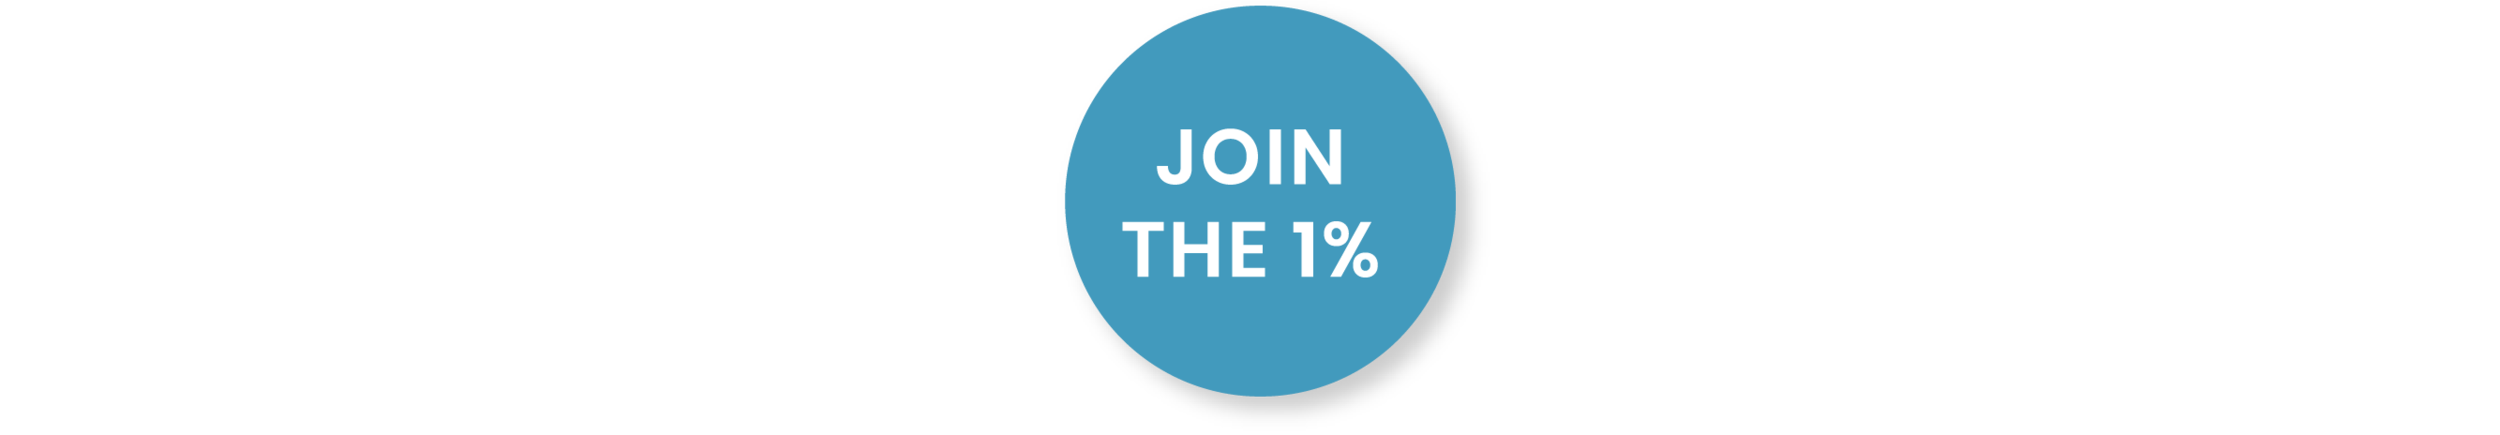 join1%button-05.png